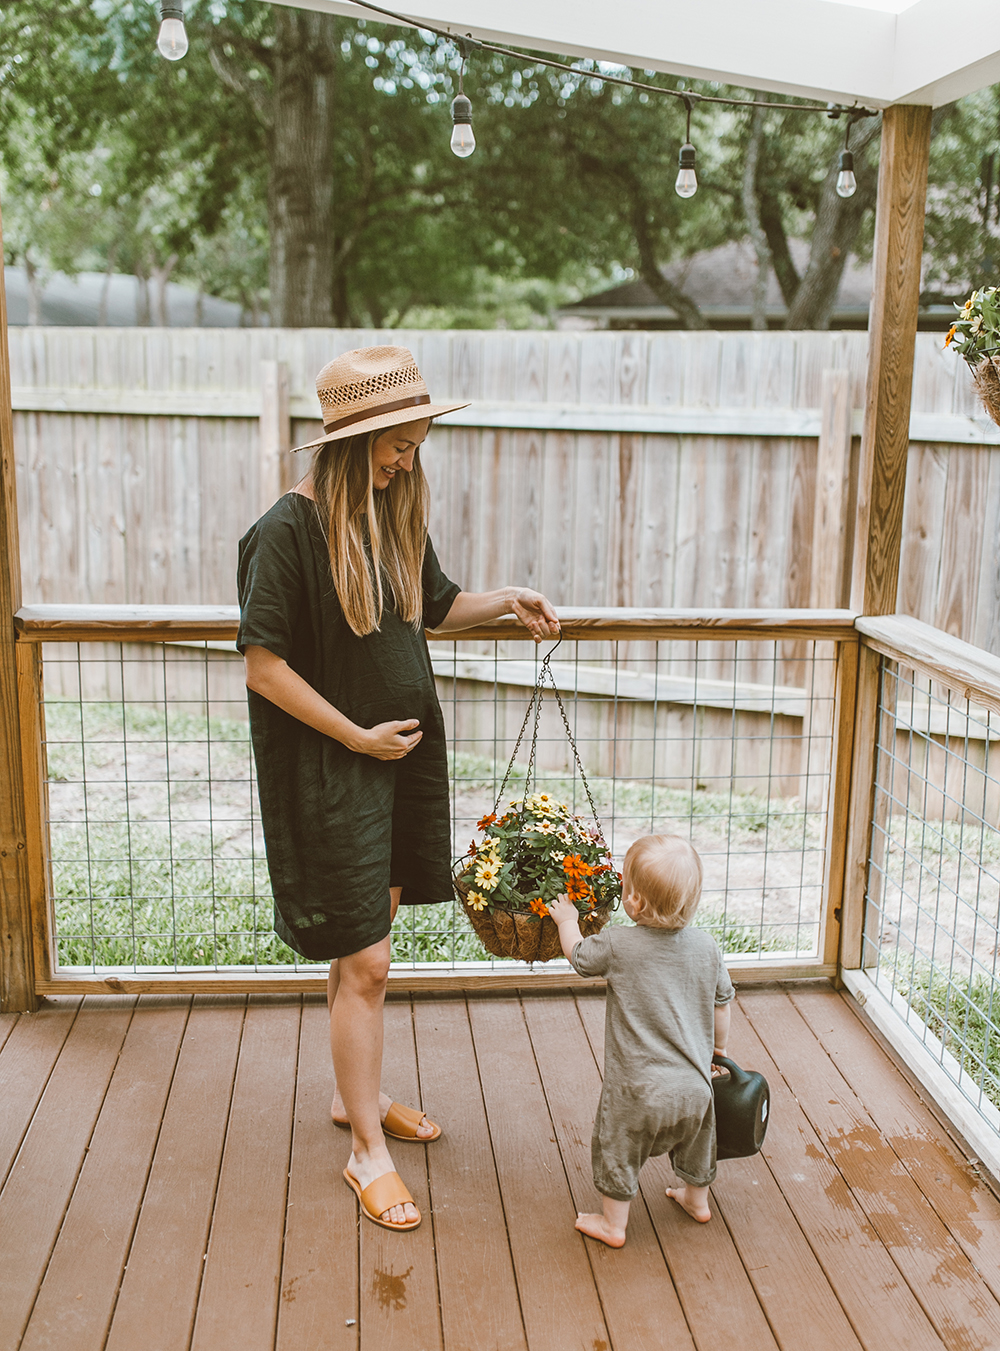 livvyland-blog-olivia-watson-linen-shift-dress-eileen-fisher-organic-handkerchief-boxy-dress-austin-texas-patio-pregnancy-summer-outfit-3